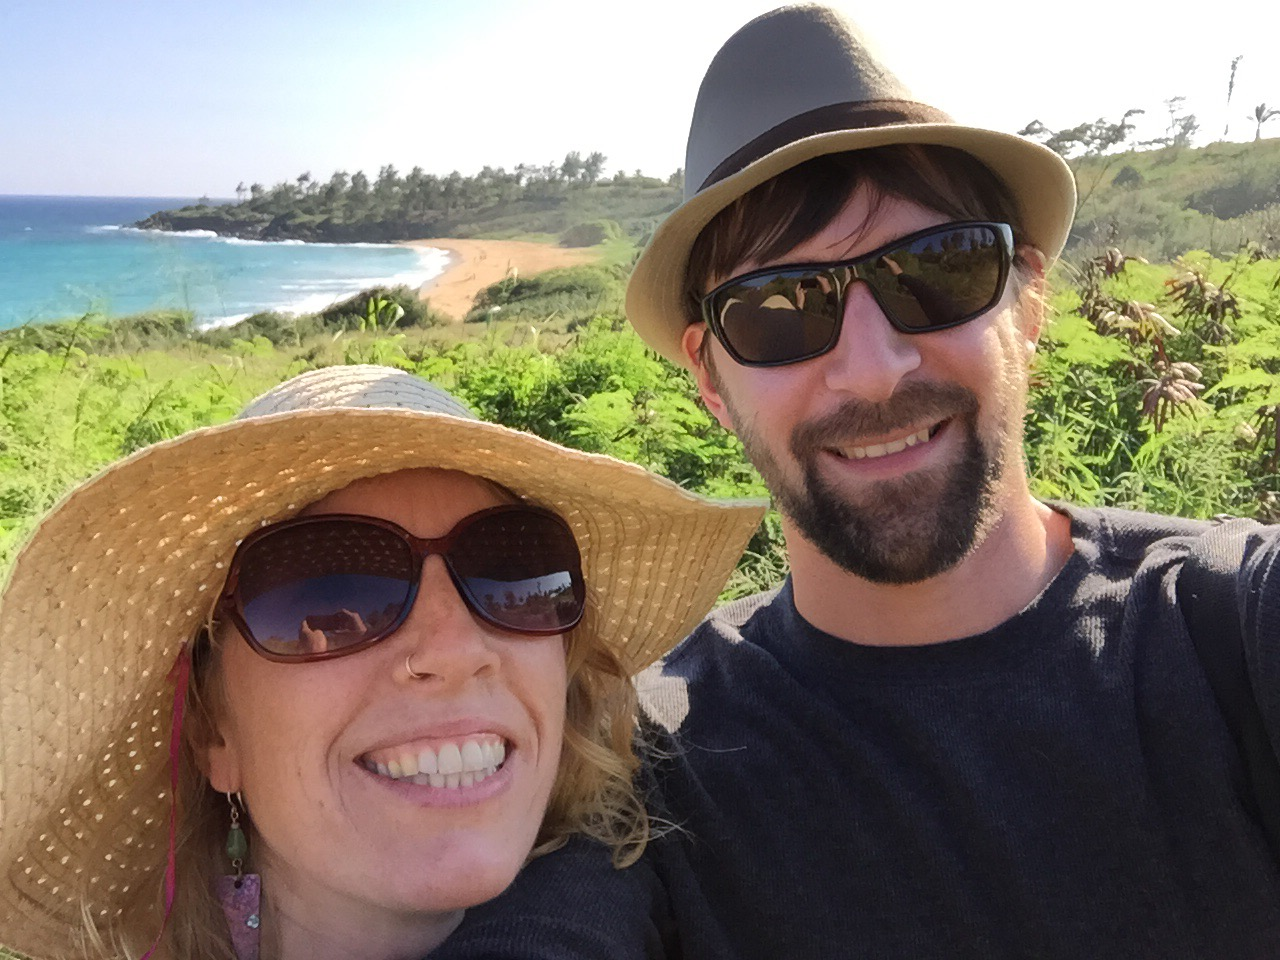 Selfie of Andrea and Jeff in front of a beach